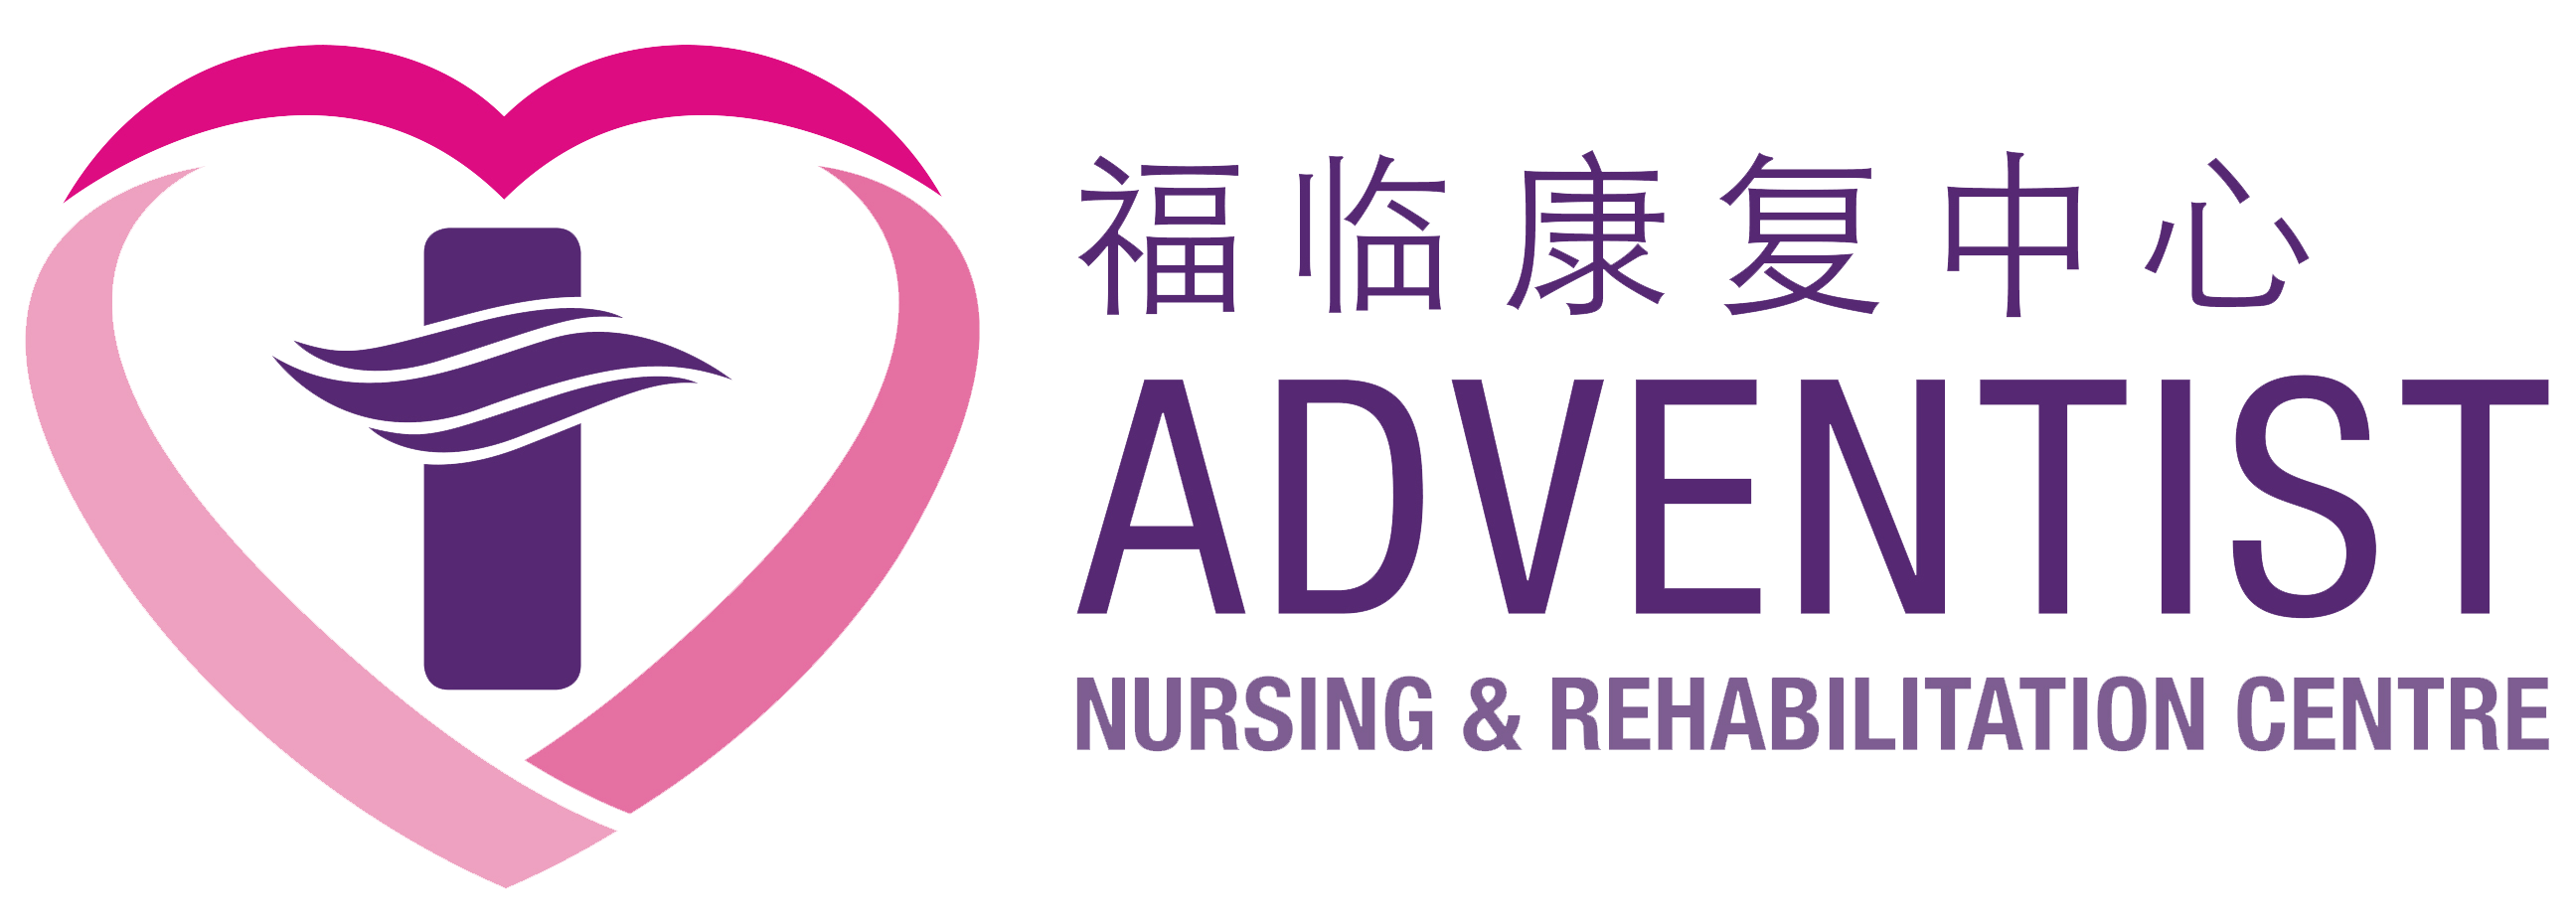 Adventist Nursing & Rehabilitation Centre